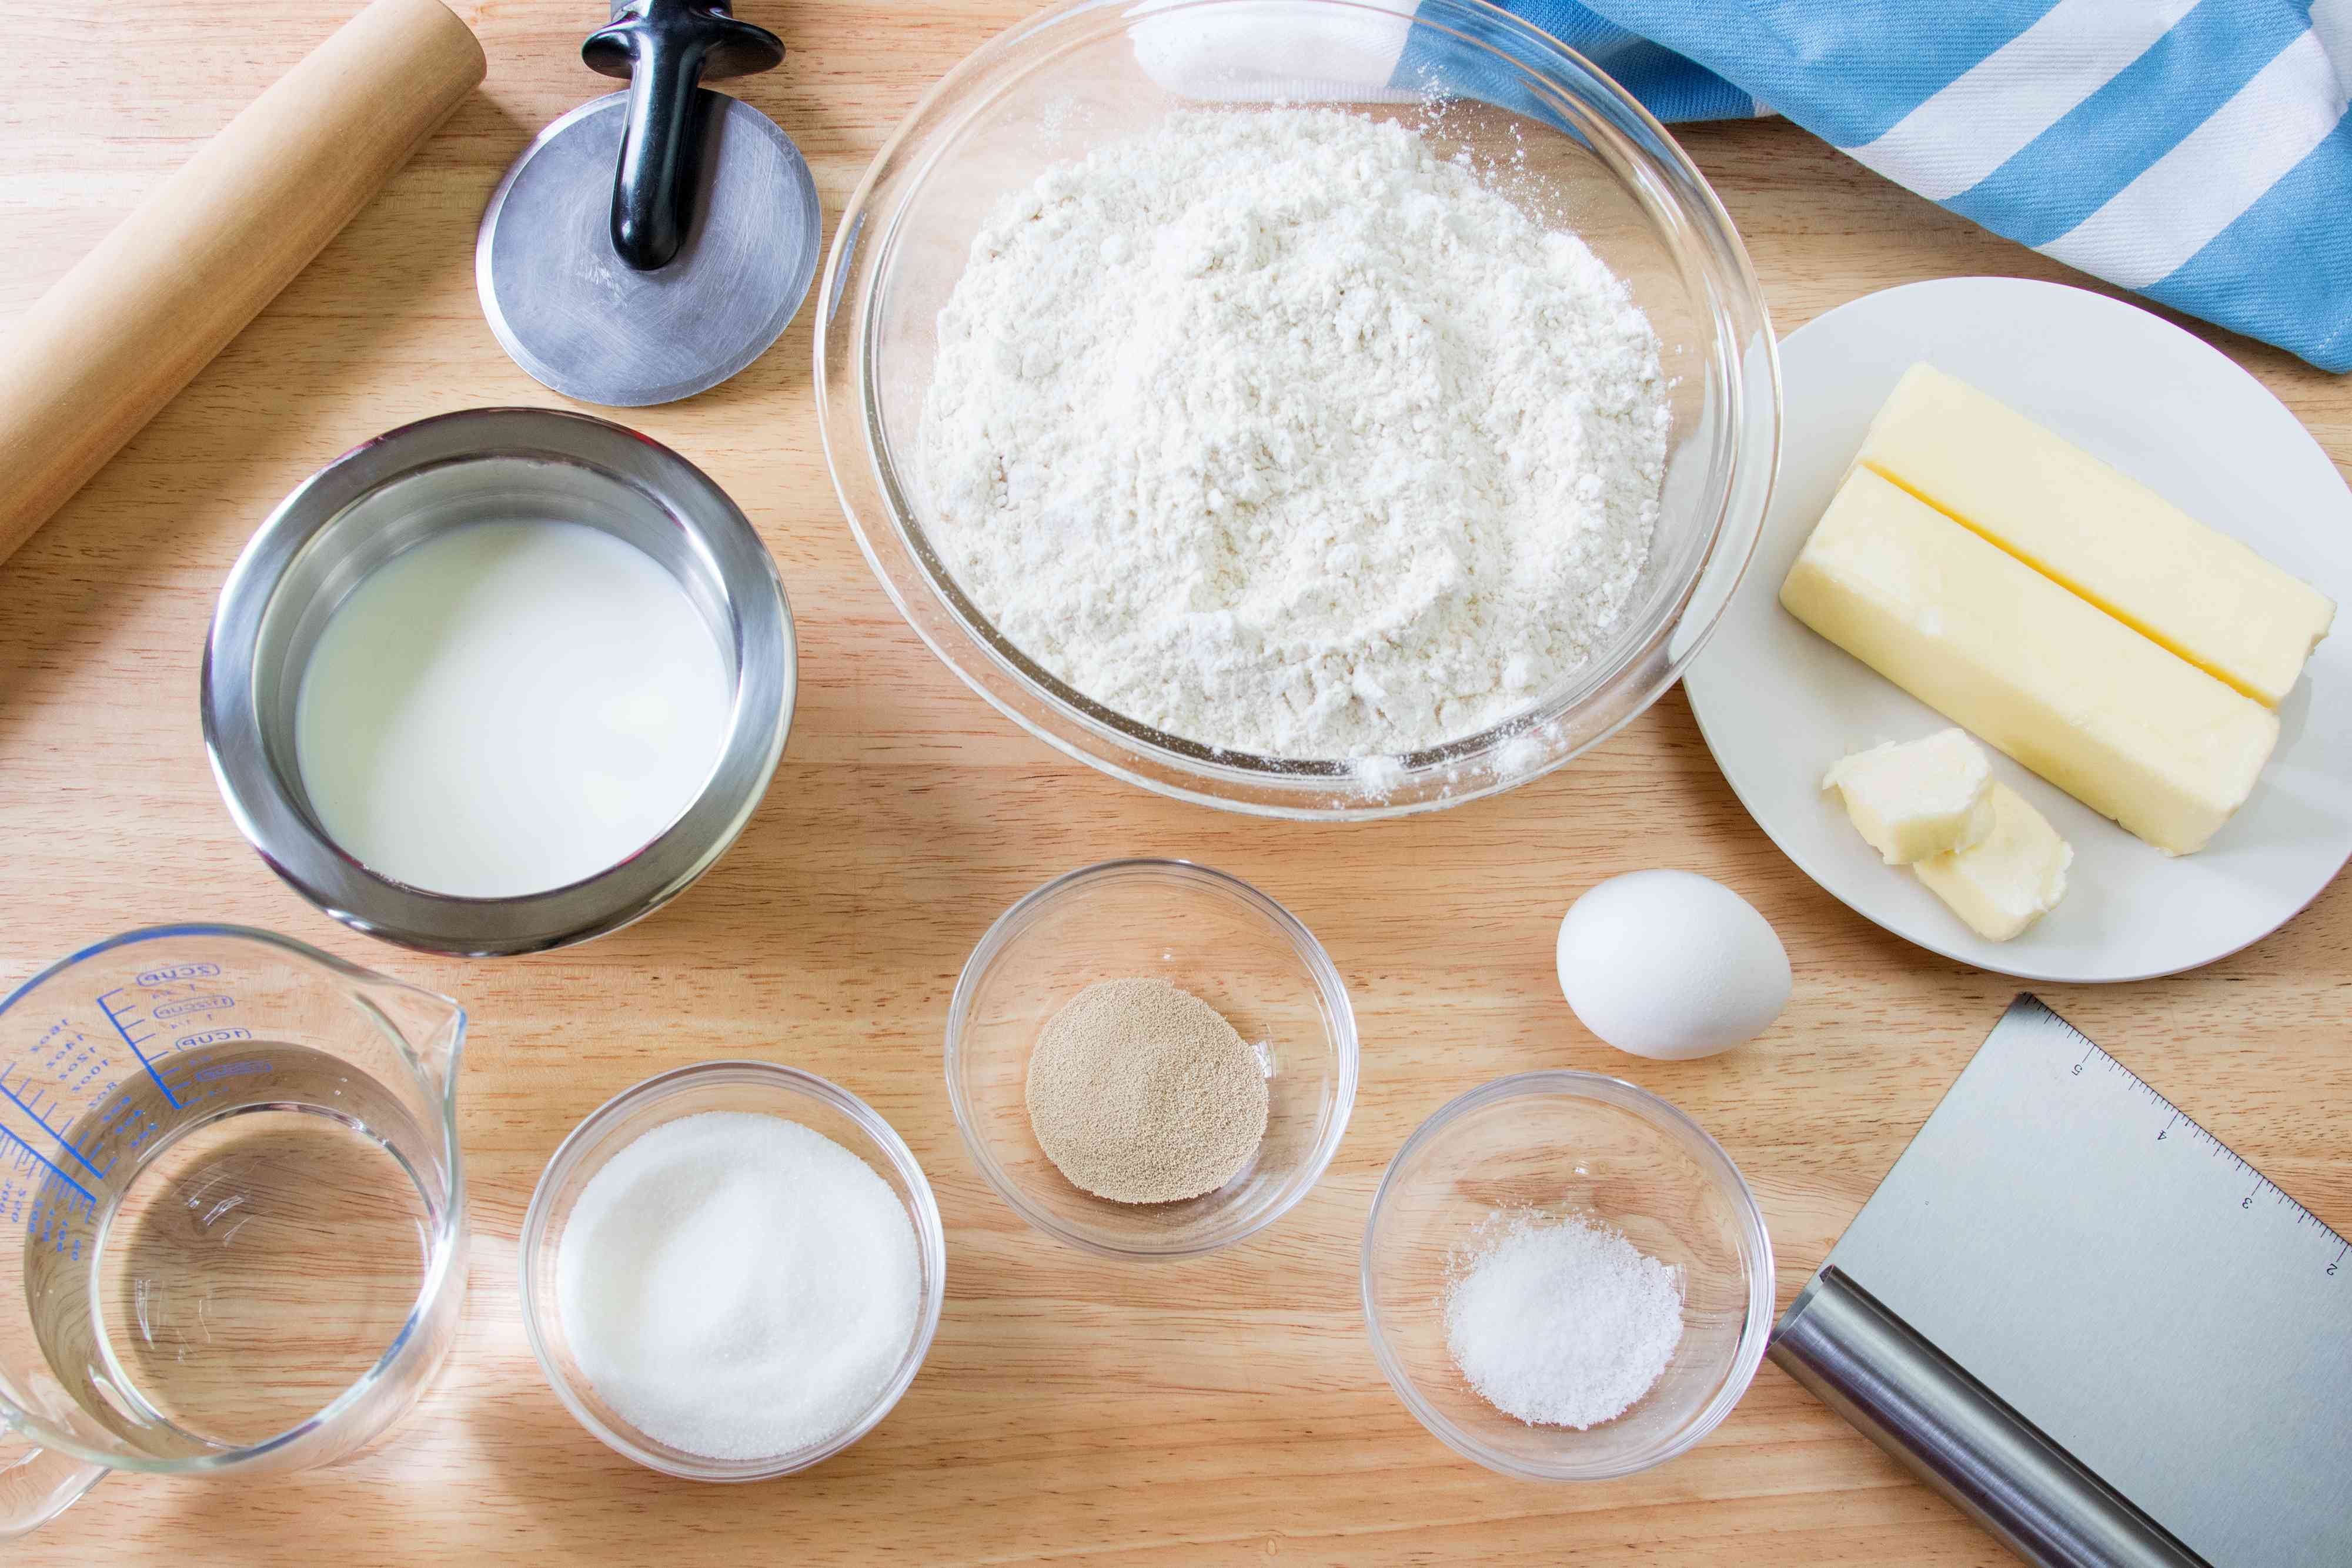 Ingredients for Croissants